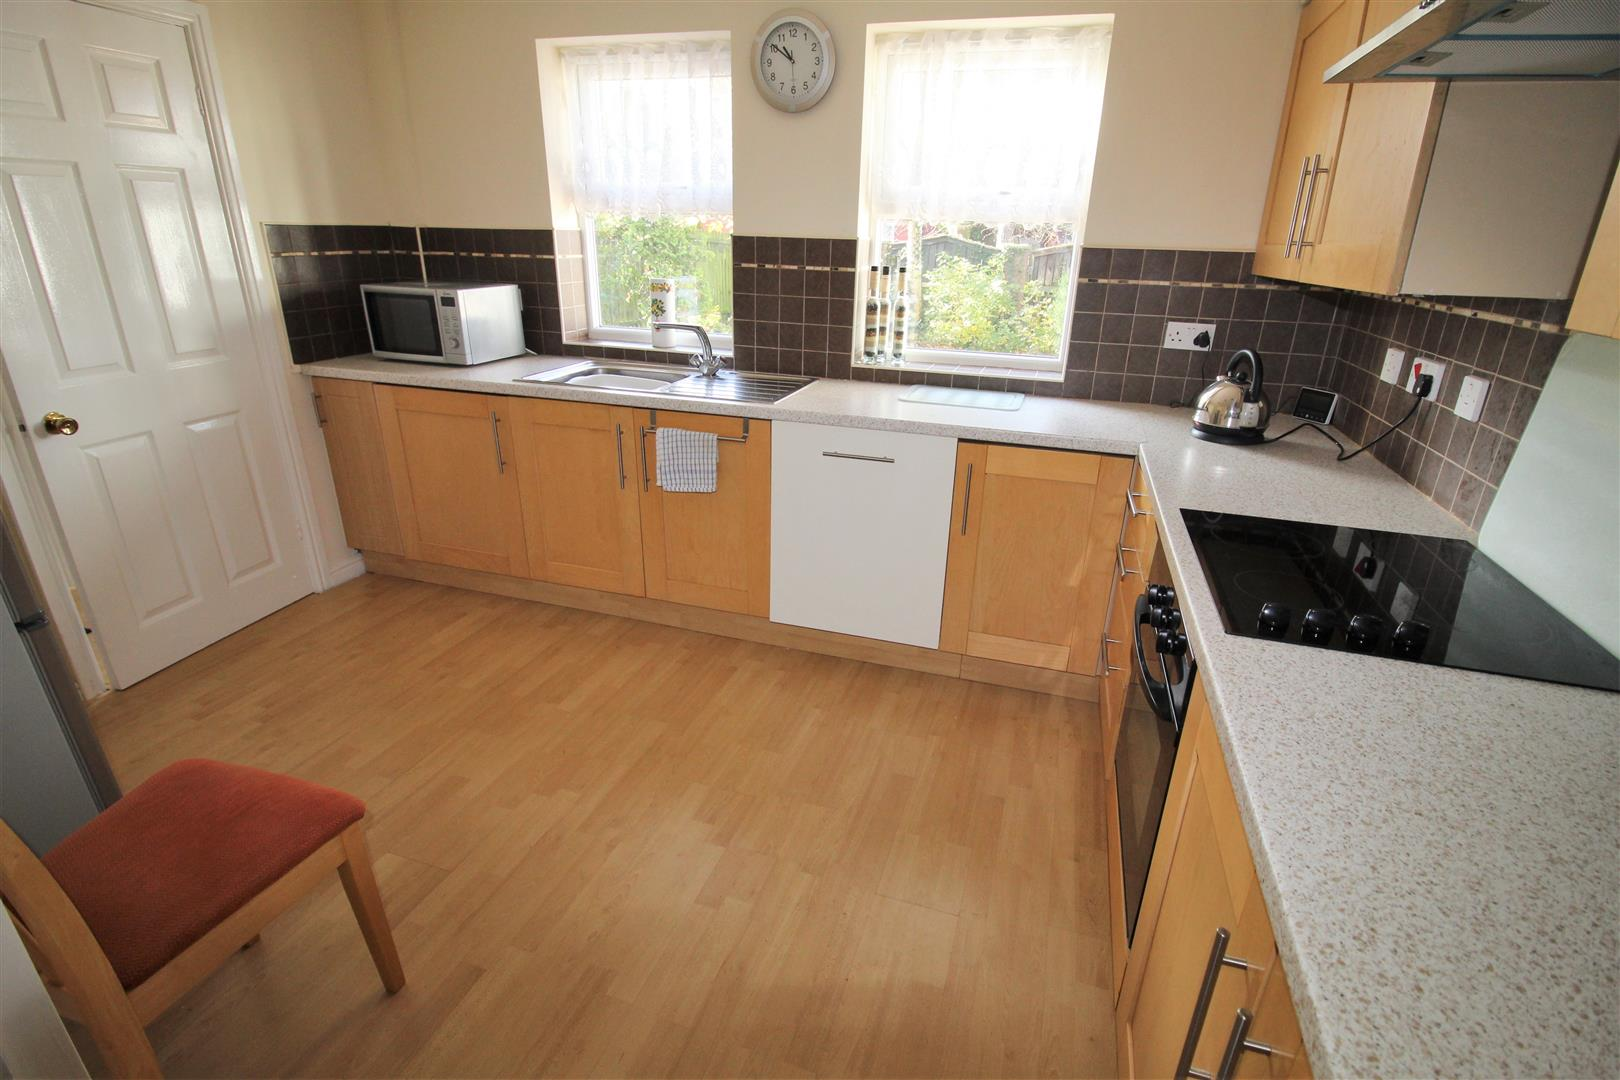 4 Bedrooms, House - Detached, Ayala Close, Liverpool